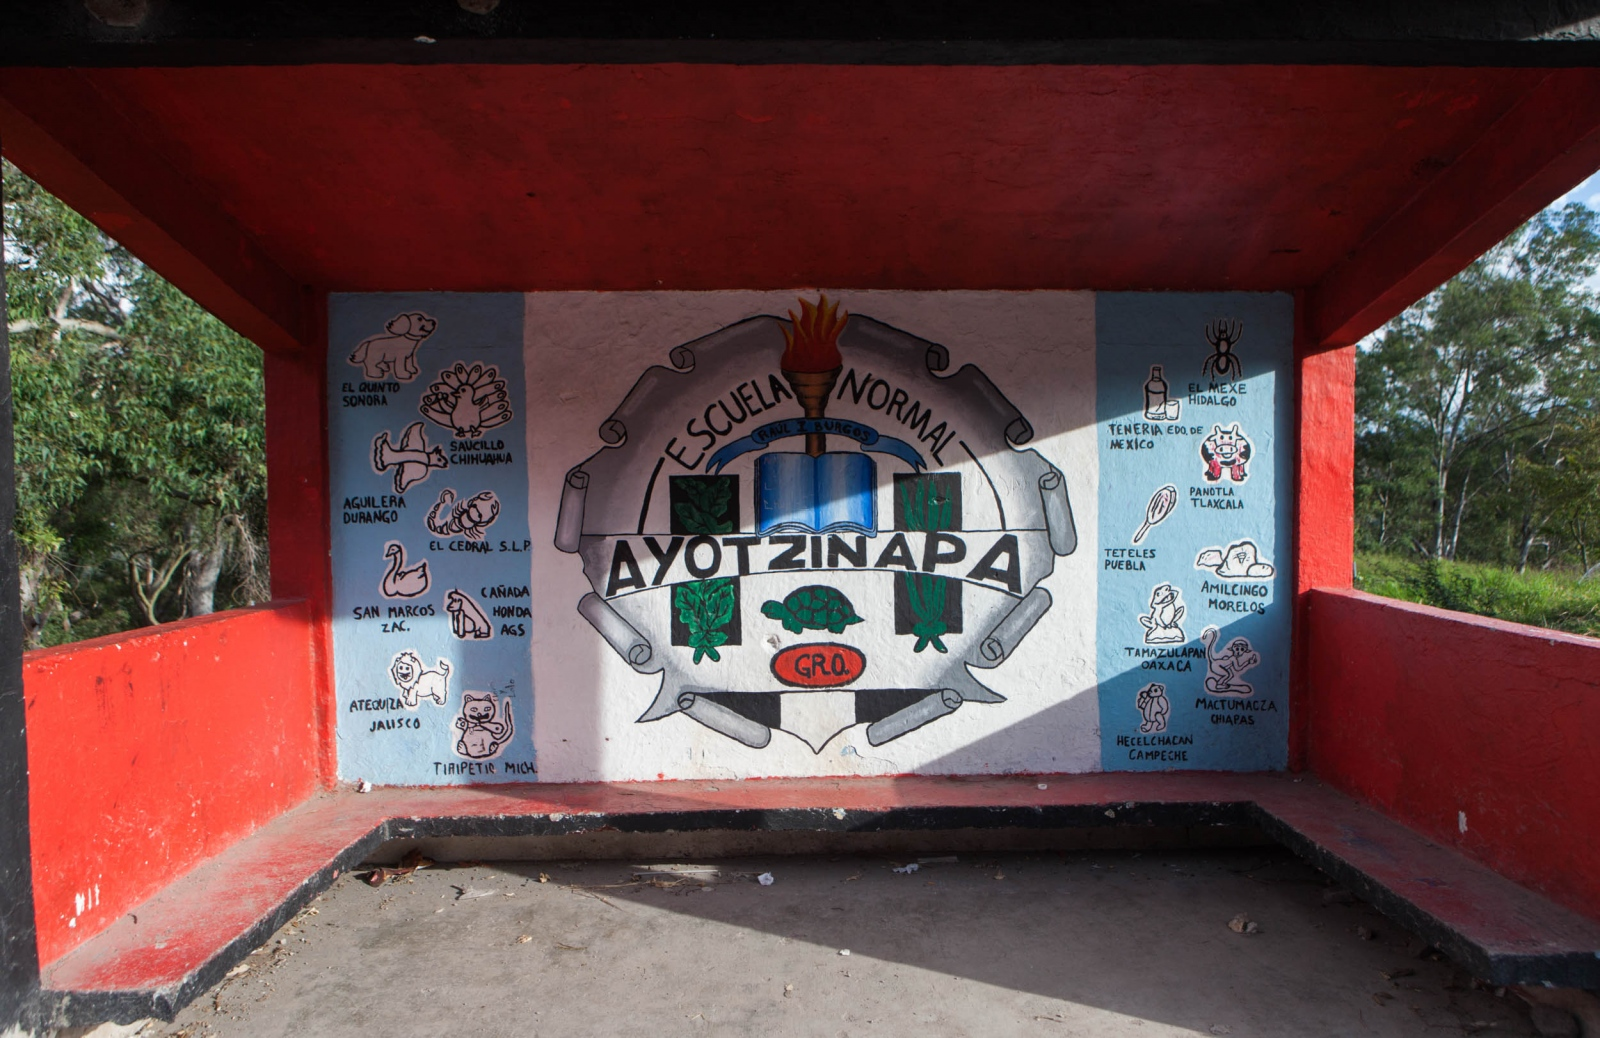 "Mural at the bus stop where the Normal Rural de Ayotzinapa Raúl Isidro Burgos school begins in the highway that connects the municipalites of Tixtla and Chilpancingo. The shields of the other 16 teaching schools are seen with the symbolic representation of elements that each region is known for. Ayotzinapa means in nahuatl "" River of turtles"". // · Mural en la parada de autobús donde comienza la Escuela Normal Rural de Ayotzinapa Raúl Isidro Burgos, sobre la carretera que une al municipio de Chilpancingo con el de Tixtla. Los escudos de las otras 16 escuelas normales rurales también están plasmadas con símbolos que representan cada una de sus regiones. Ayotzinapa quiere decir en nahuatl ""Río de Tortugas""."